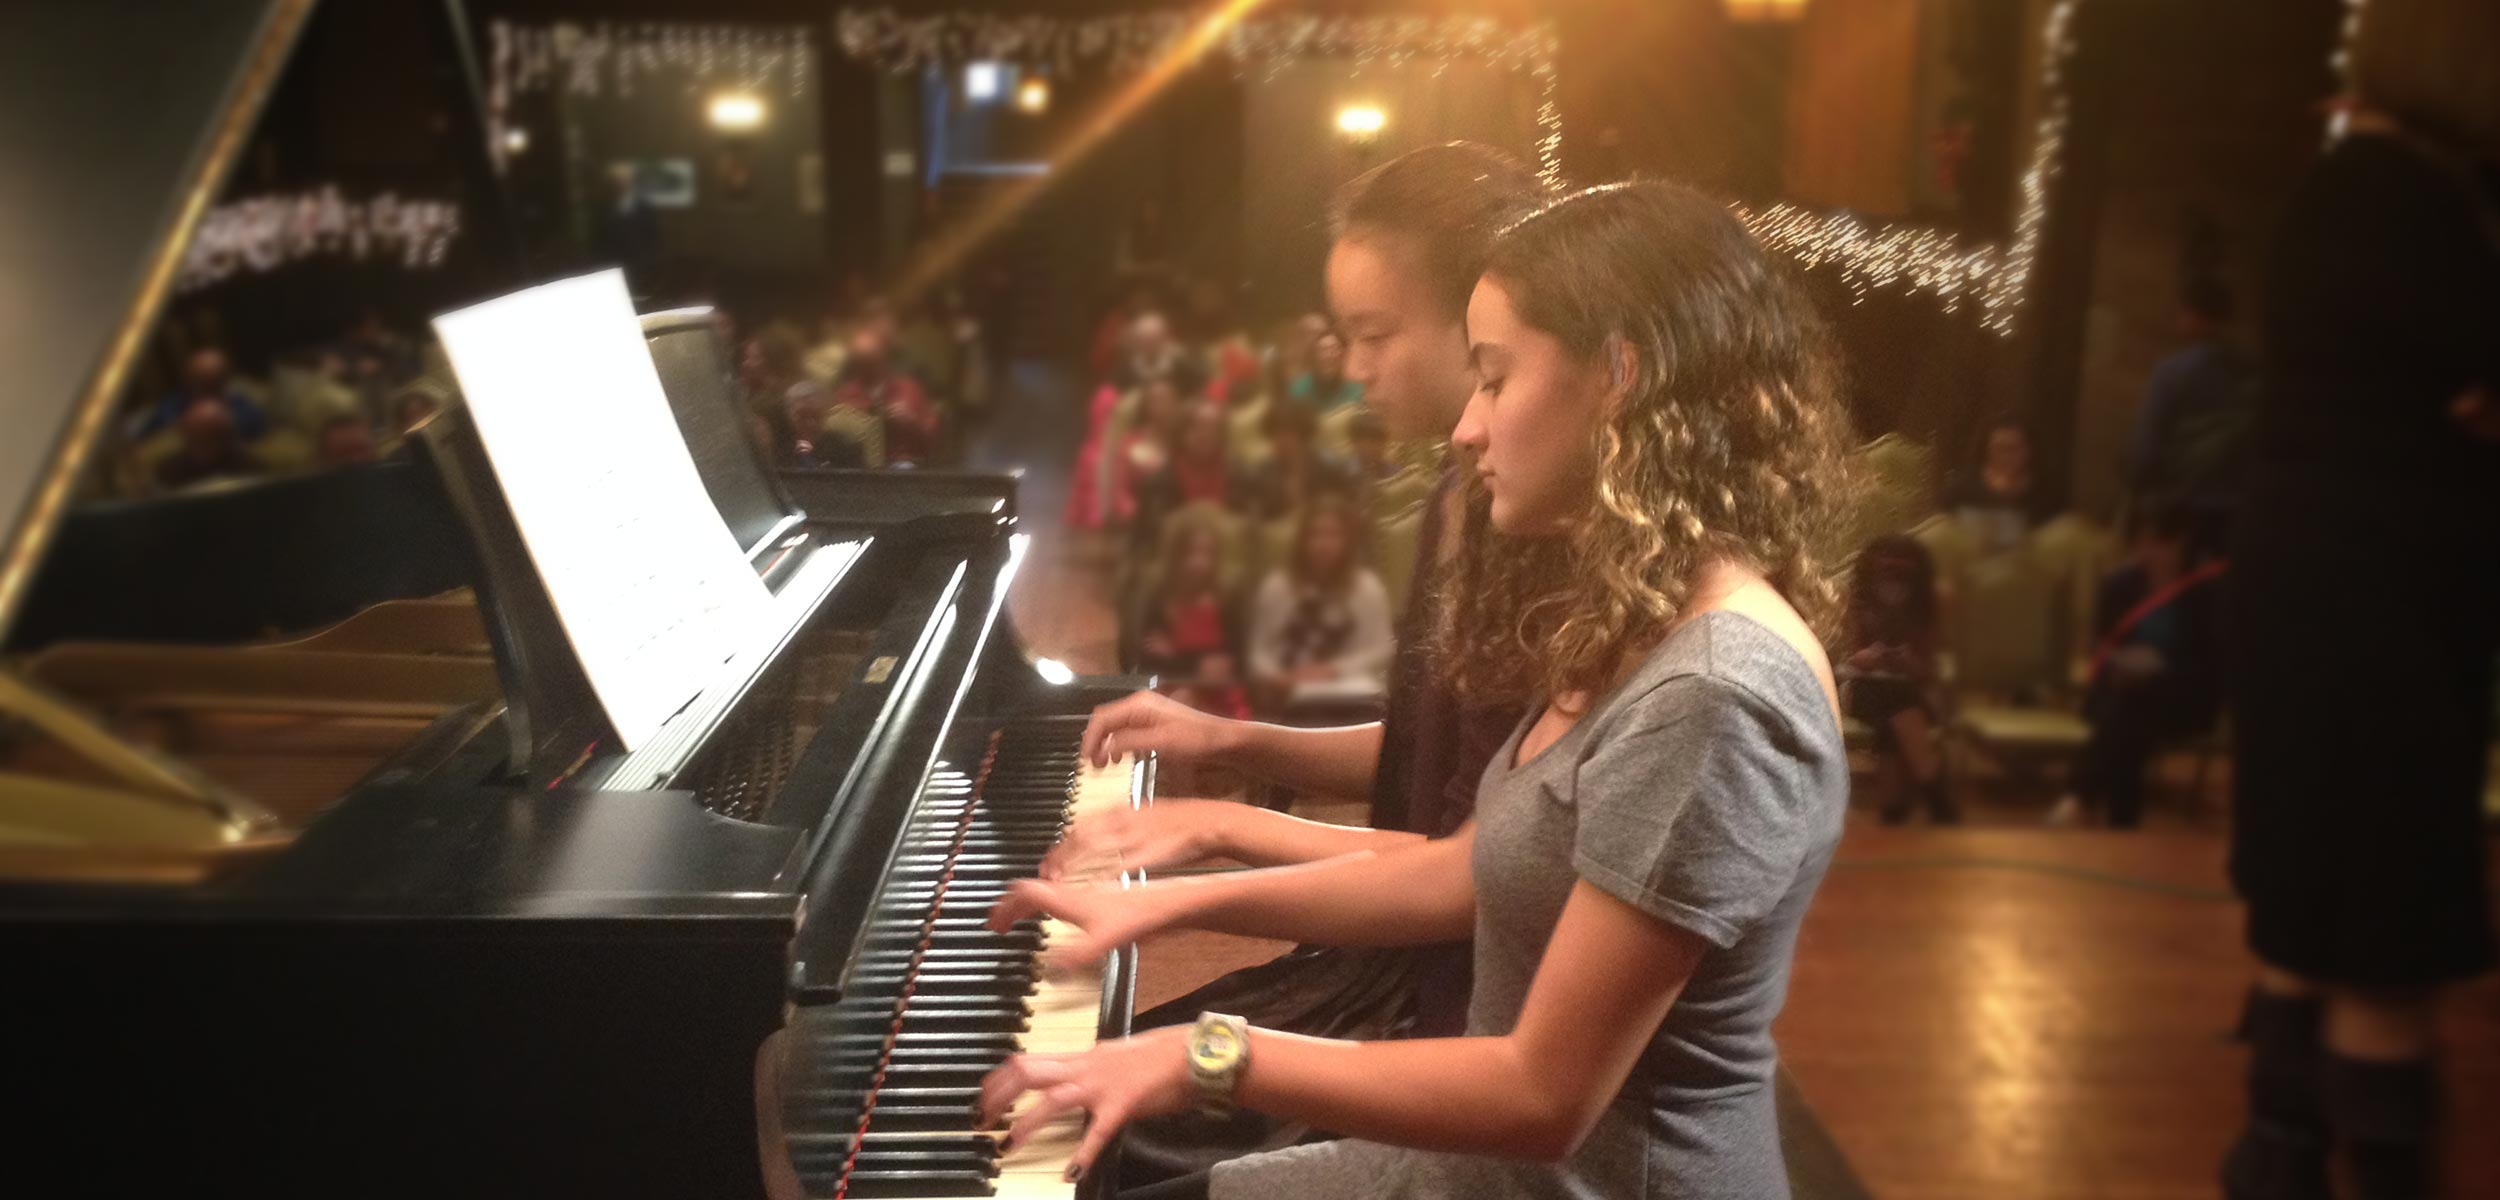 Piano lessons in Manhattan - Perfomance